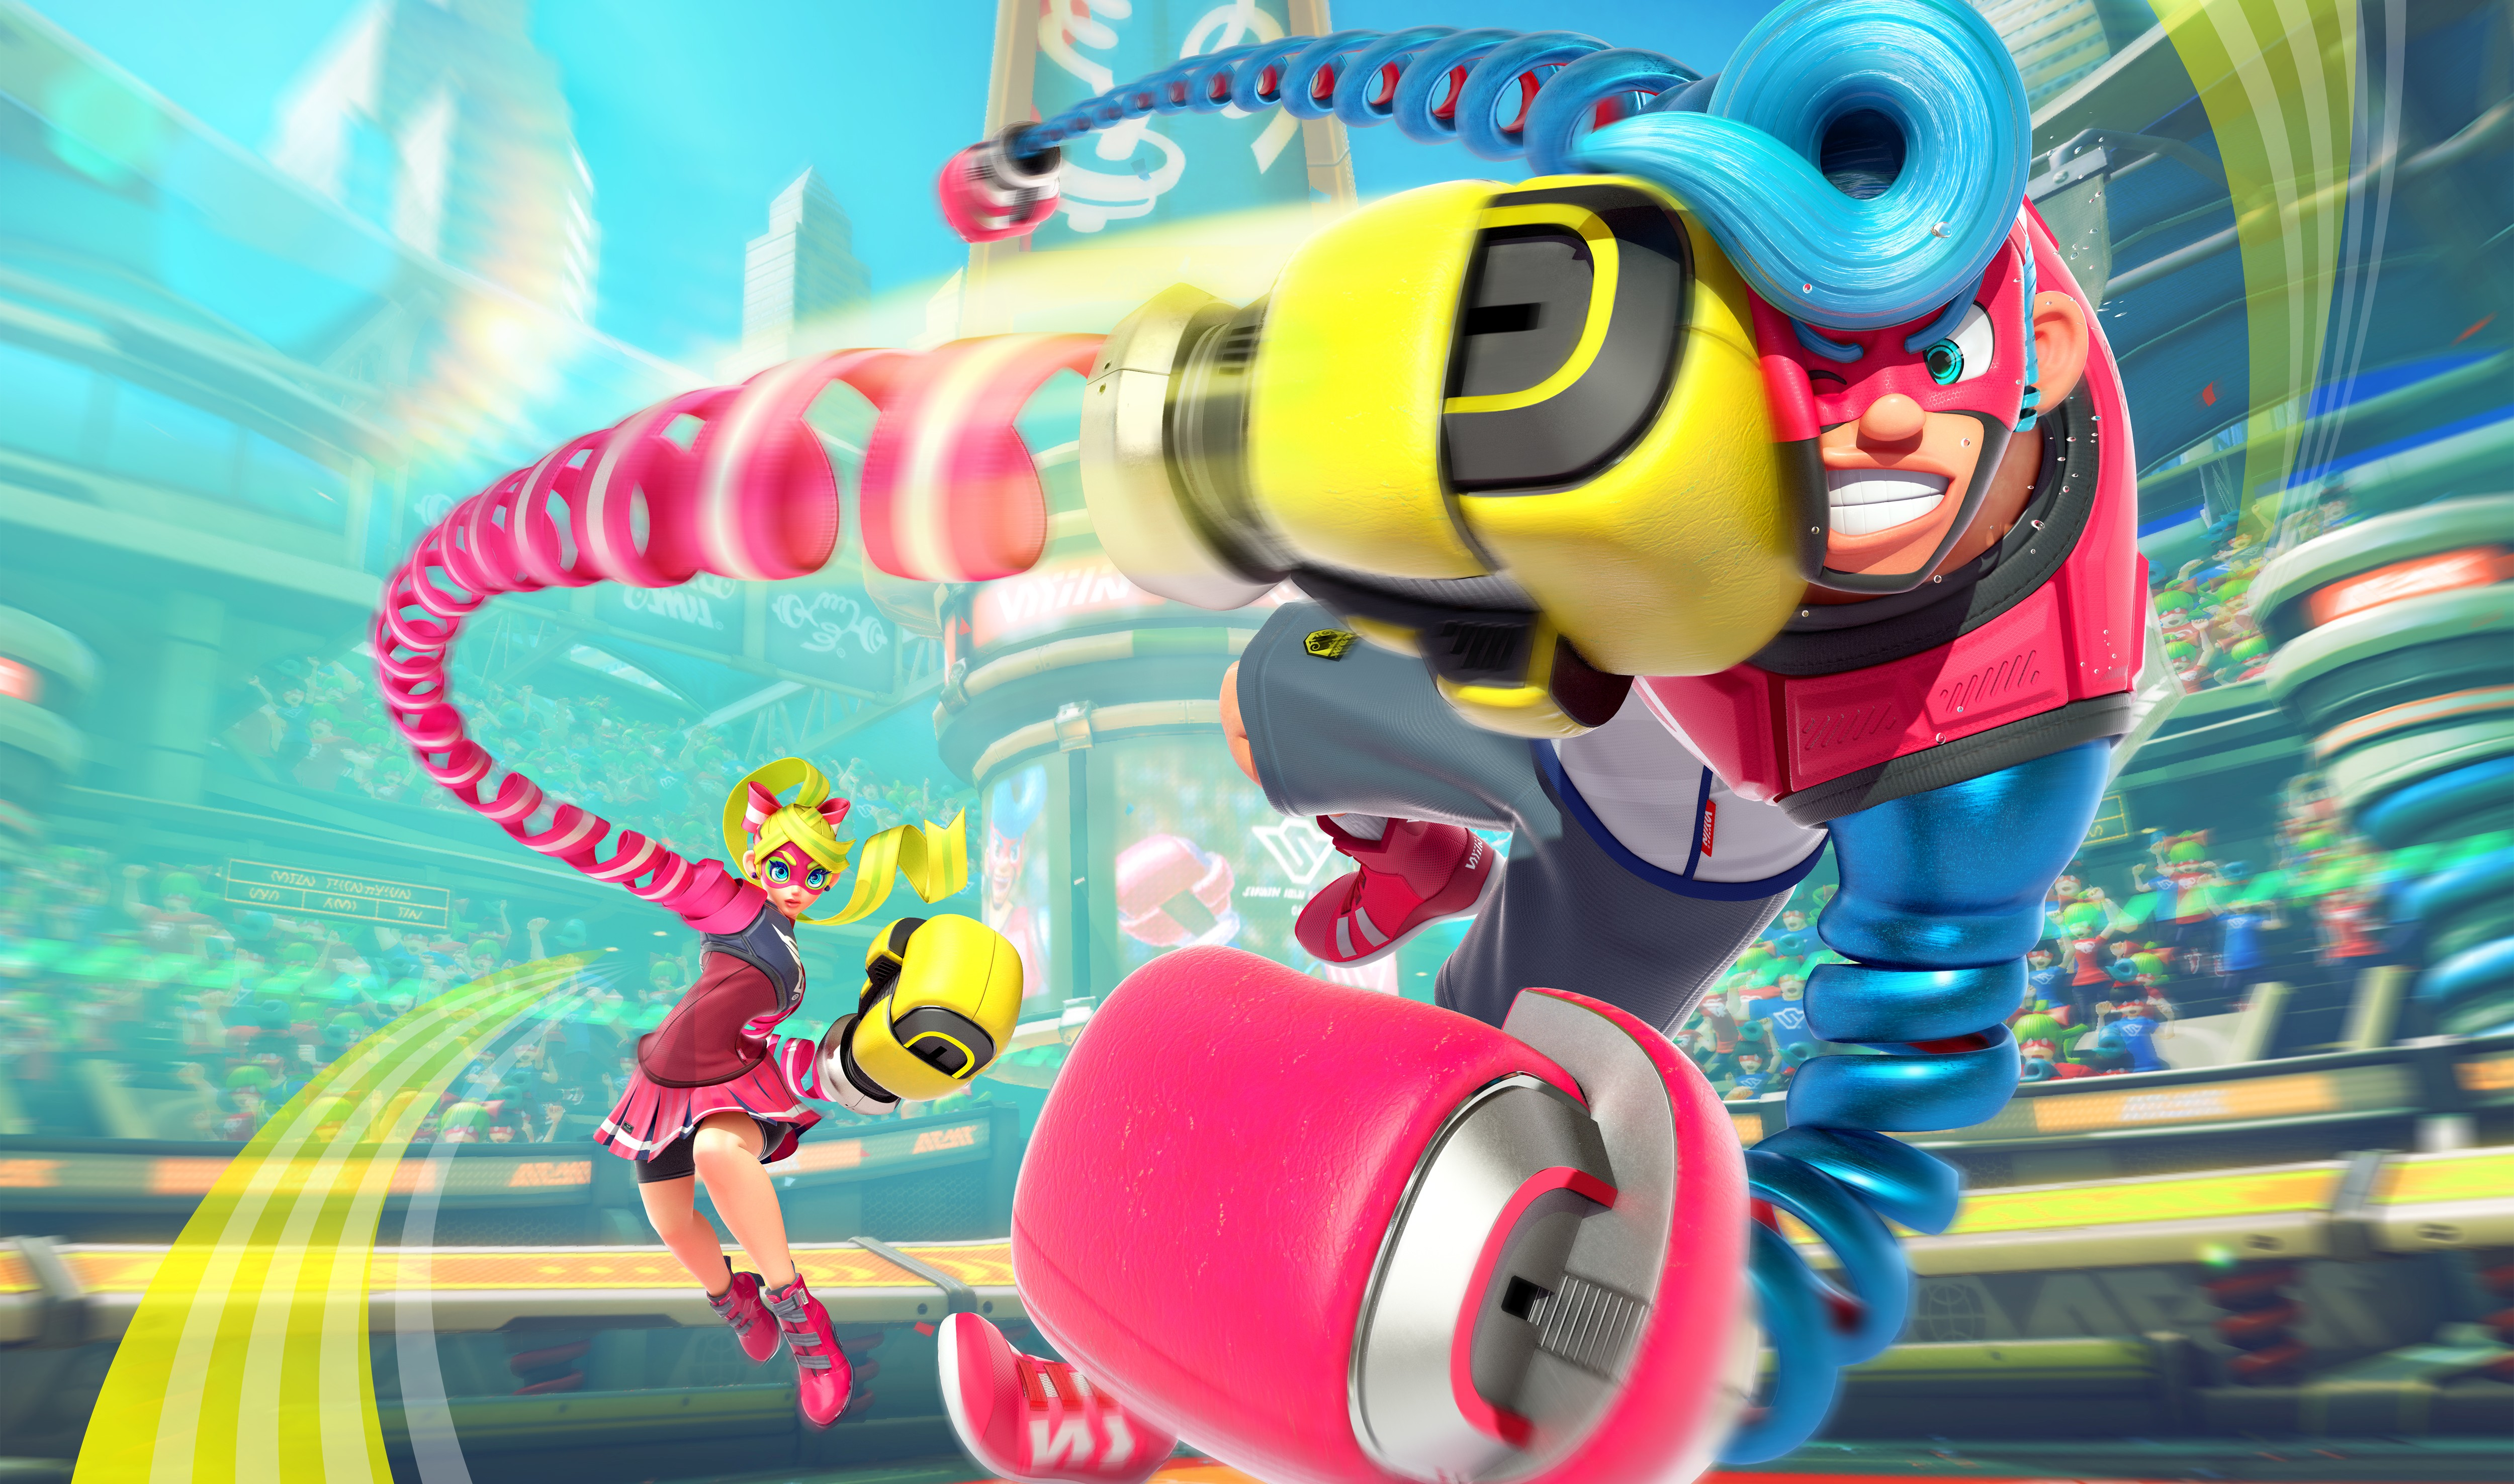 ARMS Priced At £49.99 On UK eShop With A 2.2GB File Size